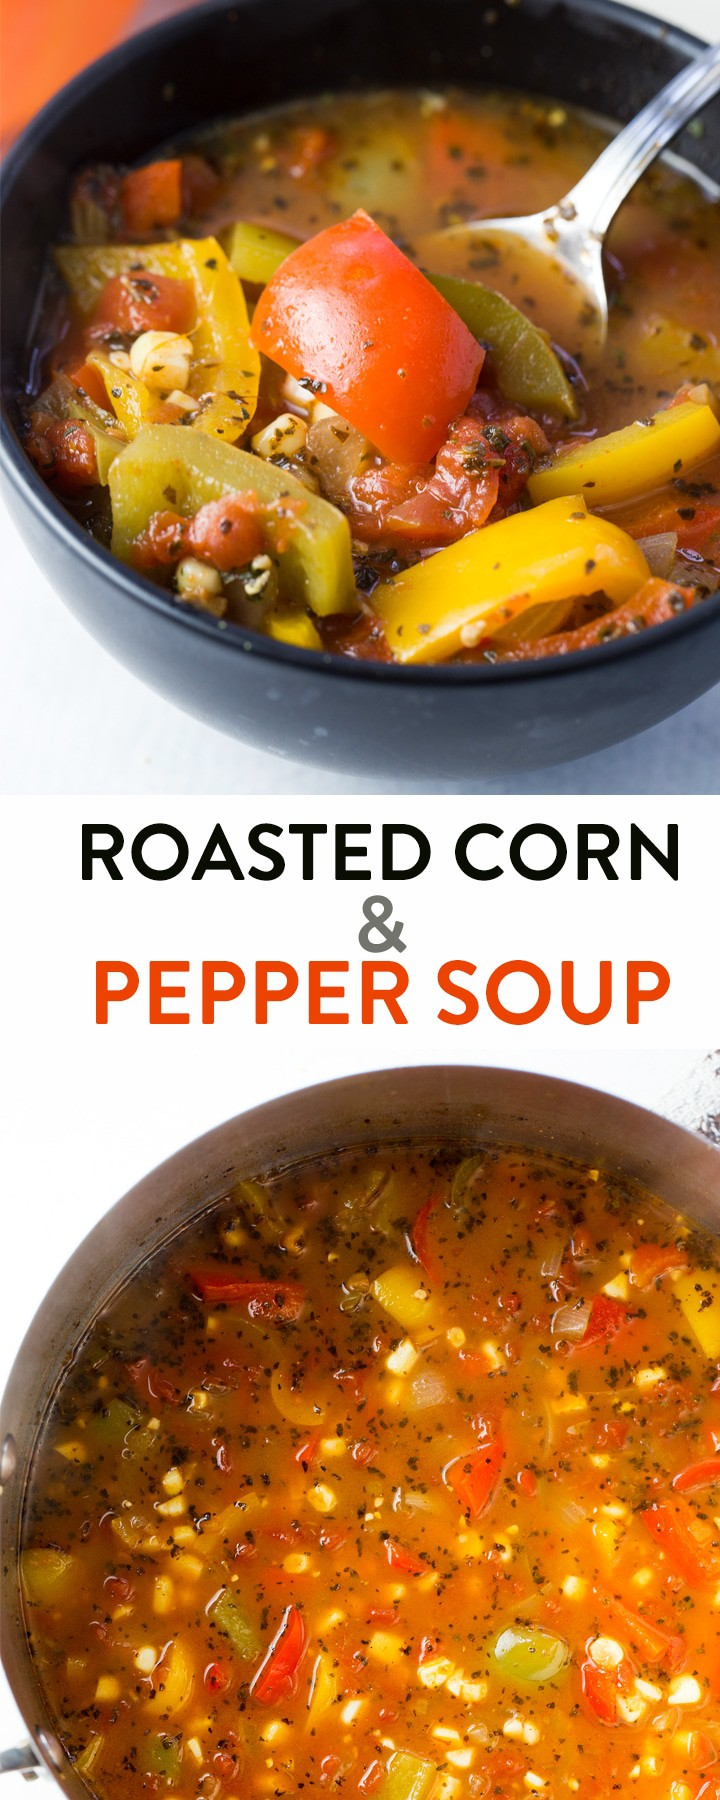 This roasted corn and pepper soup recipe is a healthy and nutritious dinner or lunch recipe. Make it whole30 and paleo by omitting the corn, but this clean eating soup is great the way it is. 21 Day Fix approved, along with the Beachbody container system. #21dayfixrecipes #Healthyrecipes #cleaneatingrecipes #cleaneatingsoup #souprecipes #healthysoup